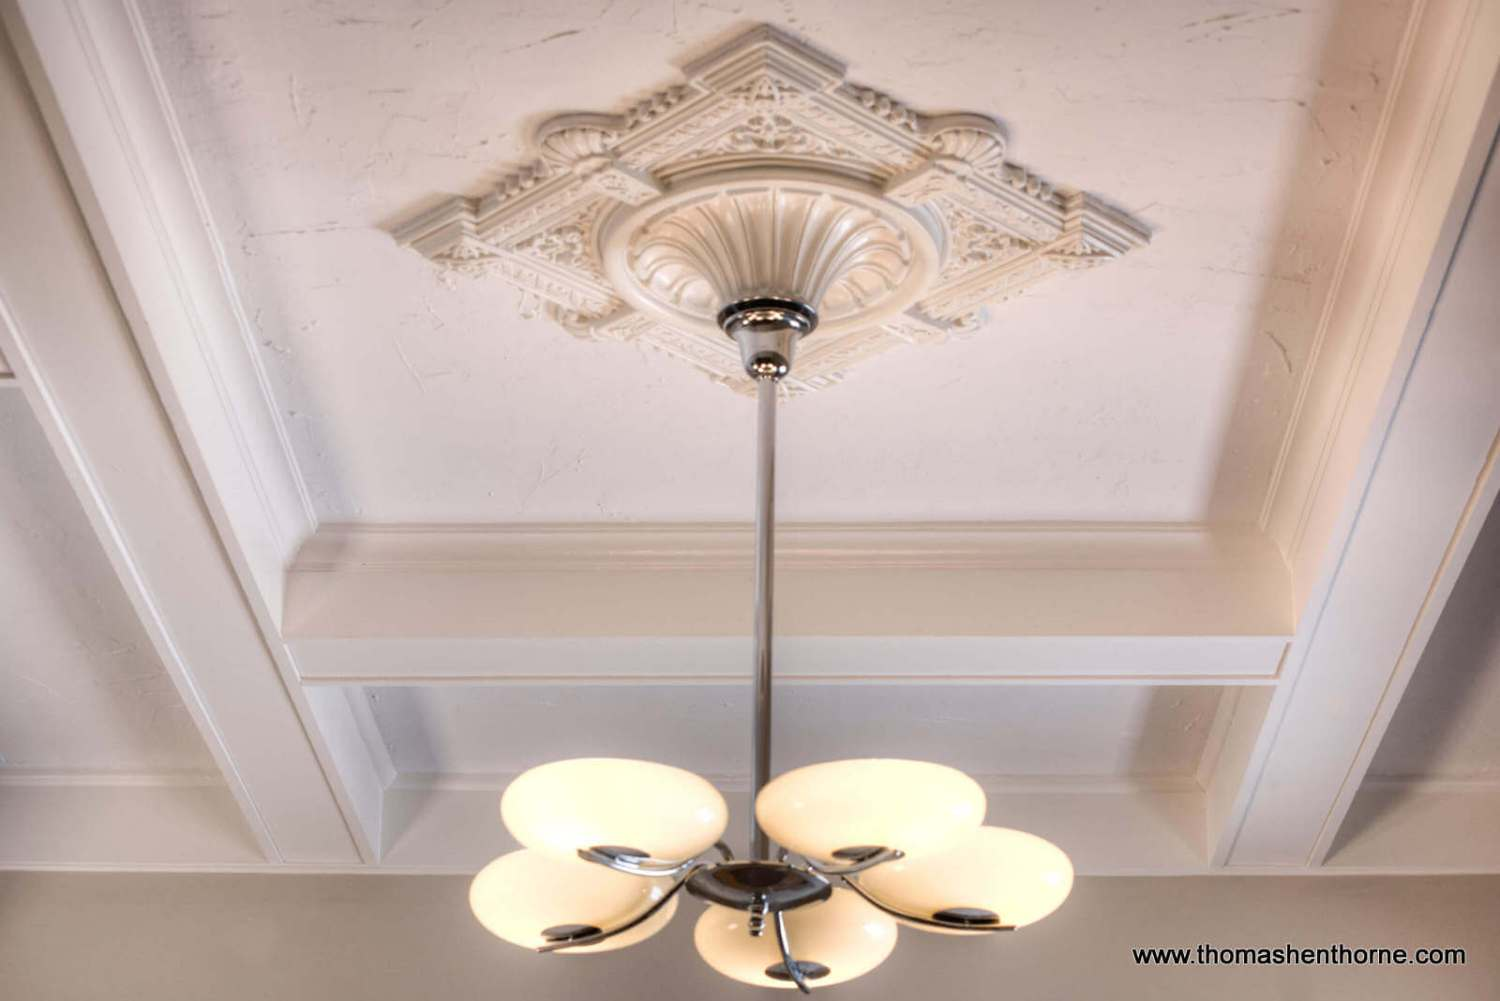 Close up of light fixture and ceiling medallion